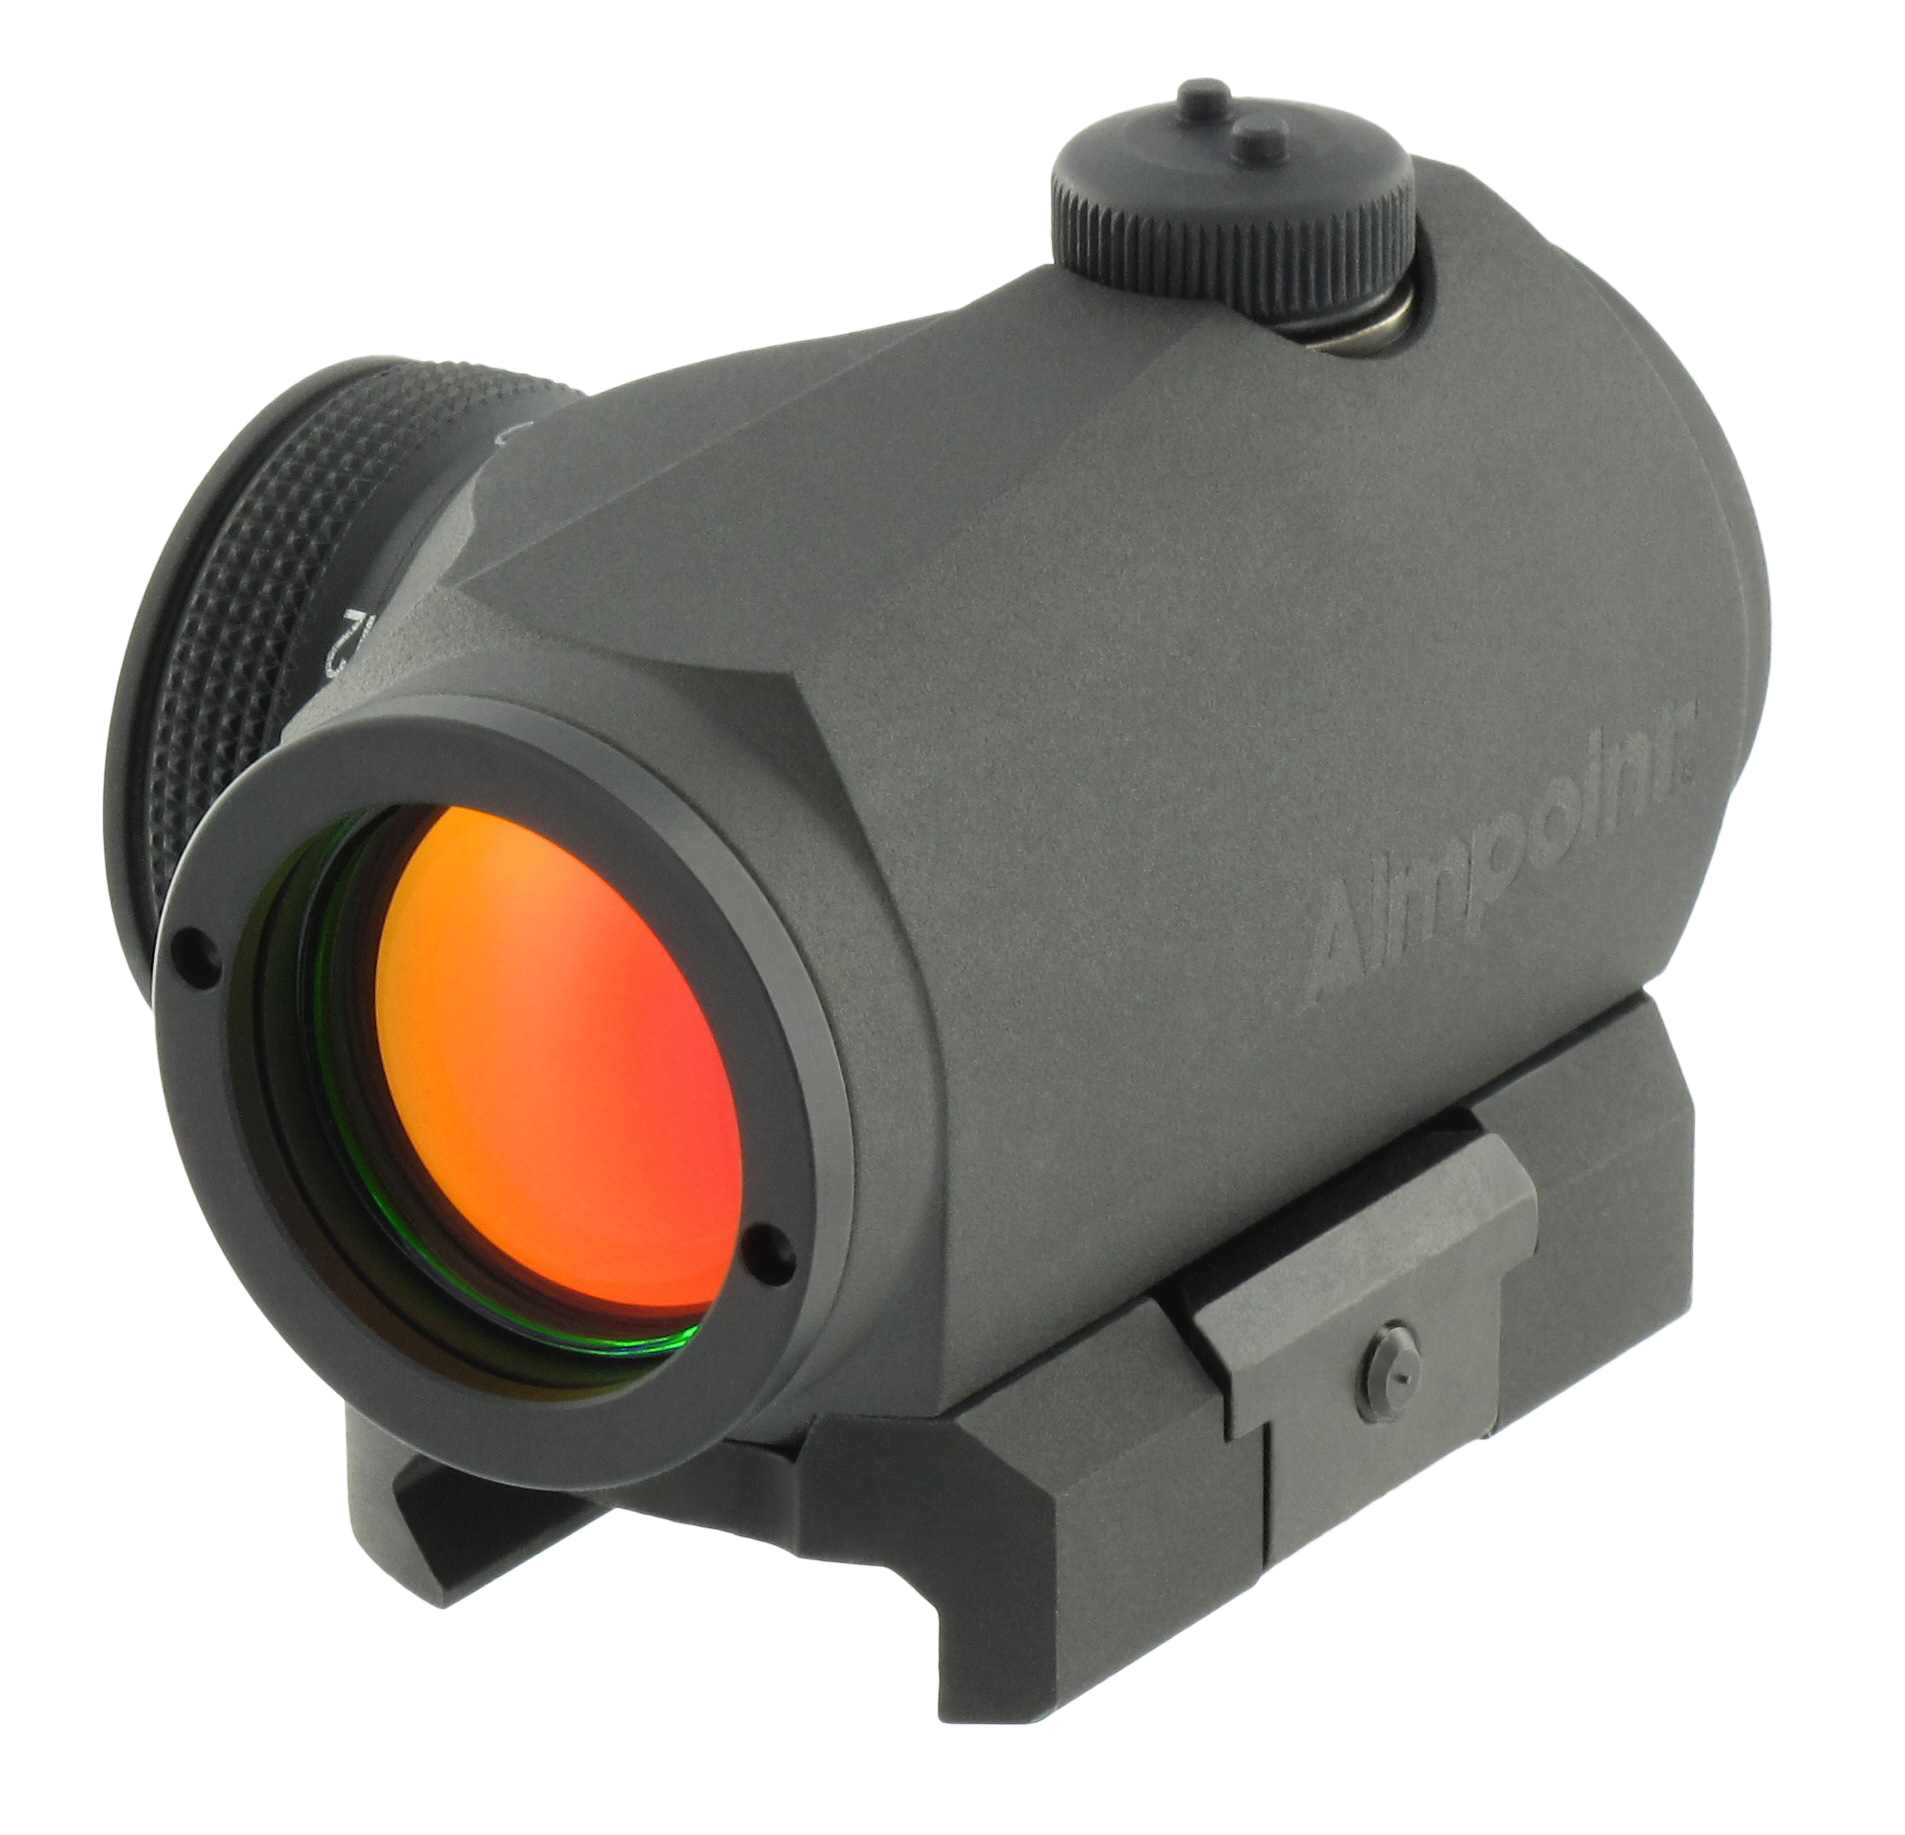 Pin On Red Dot Sights